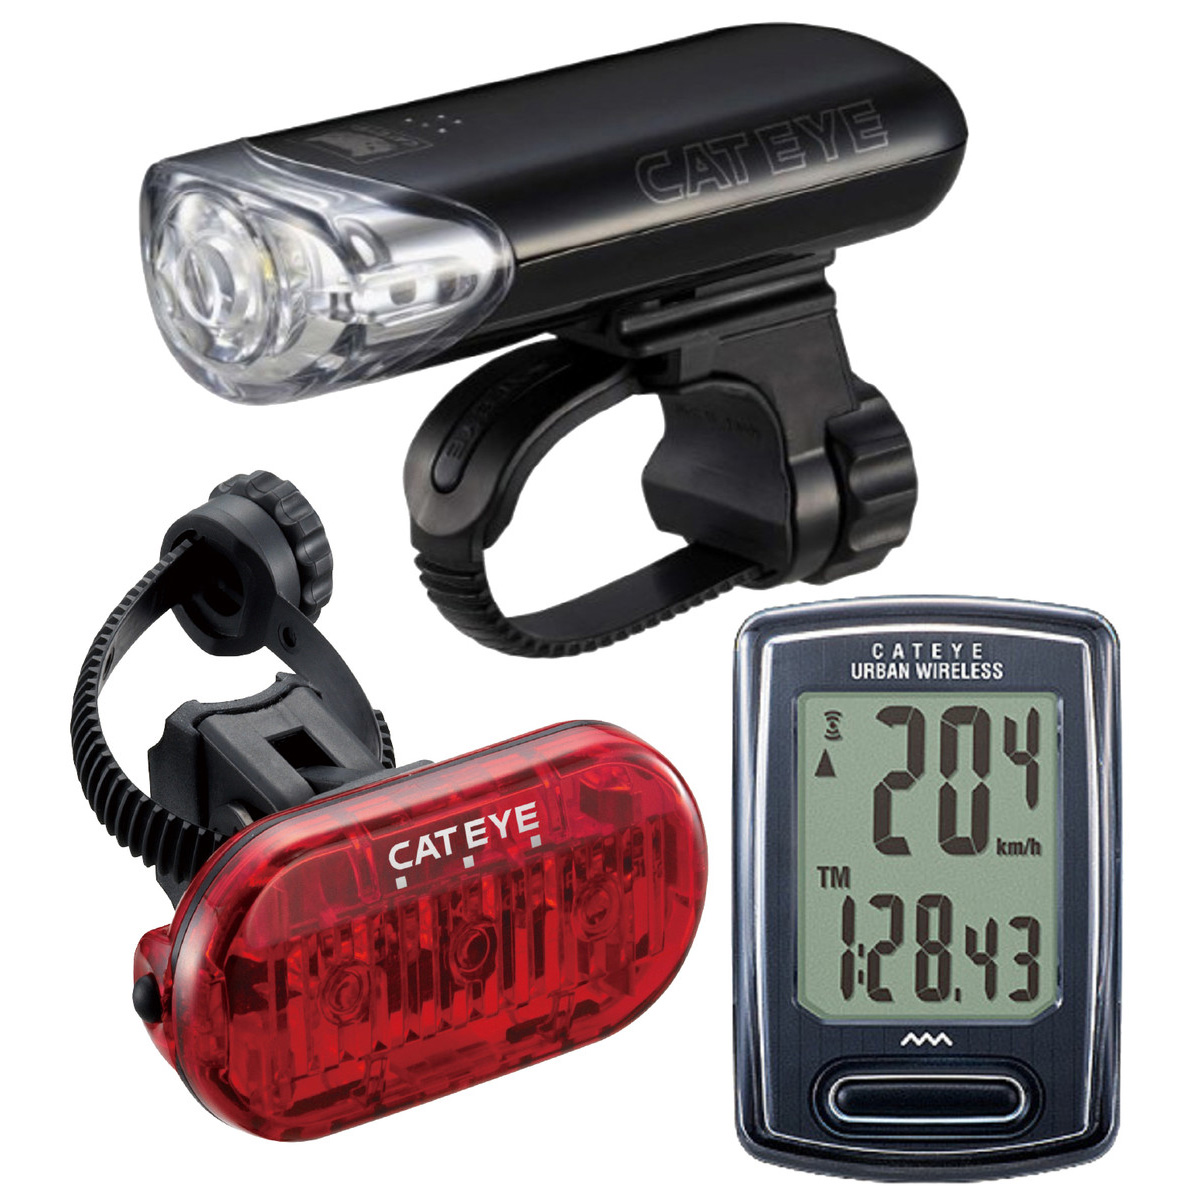 CatEye EL140/LD135/VT240W Bicycle Light/Computer Combo Kit - 8901040